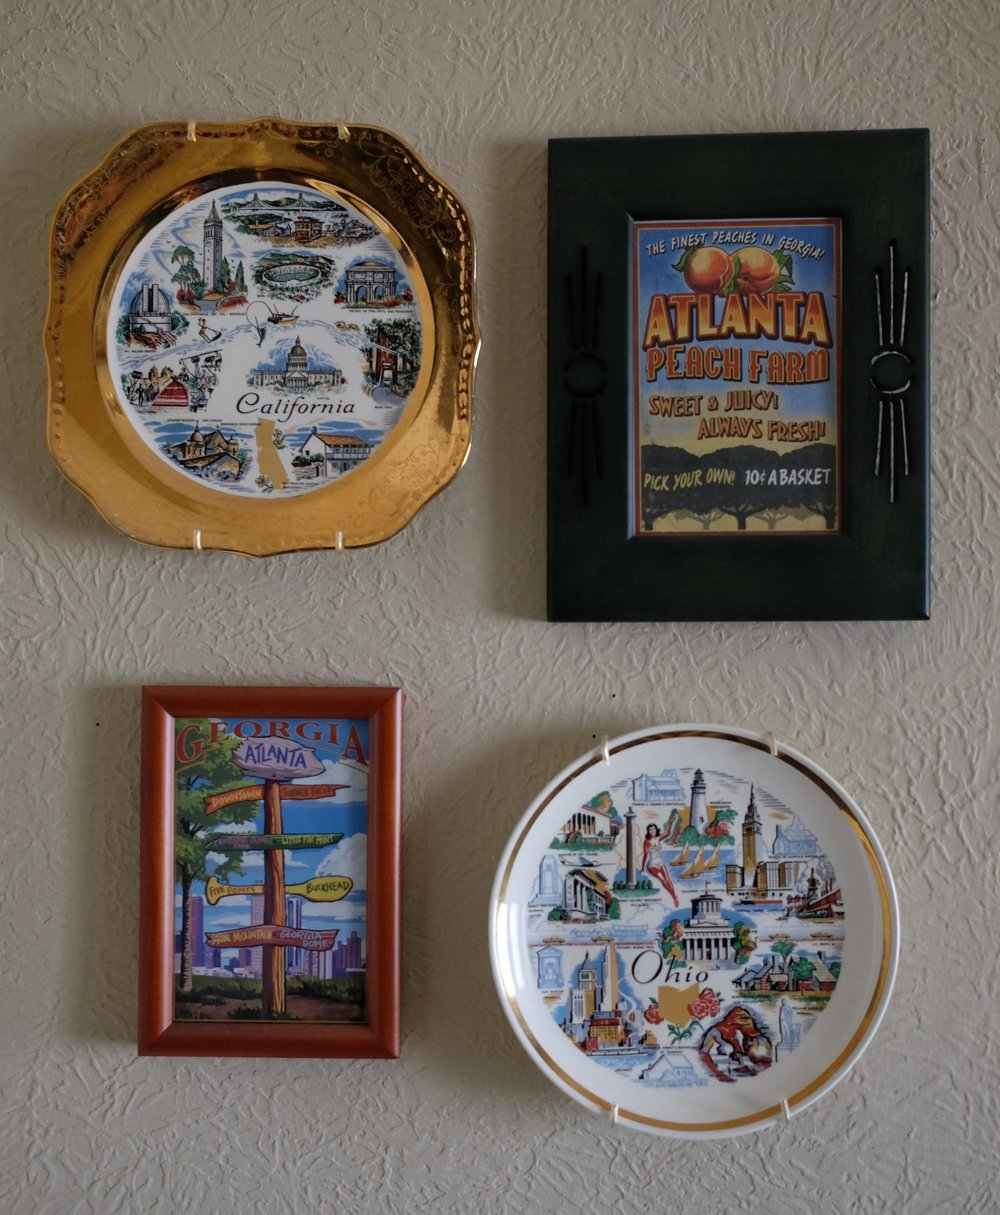 California & Georgia decorative plates. The birthplaces of my husand (CA) and I (OH).